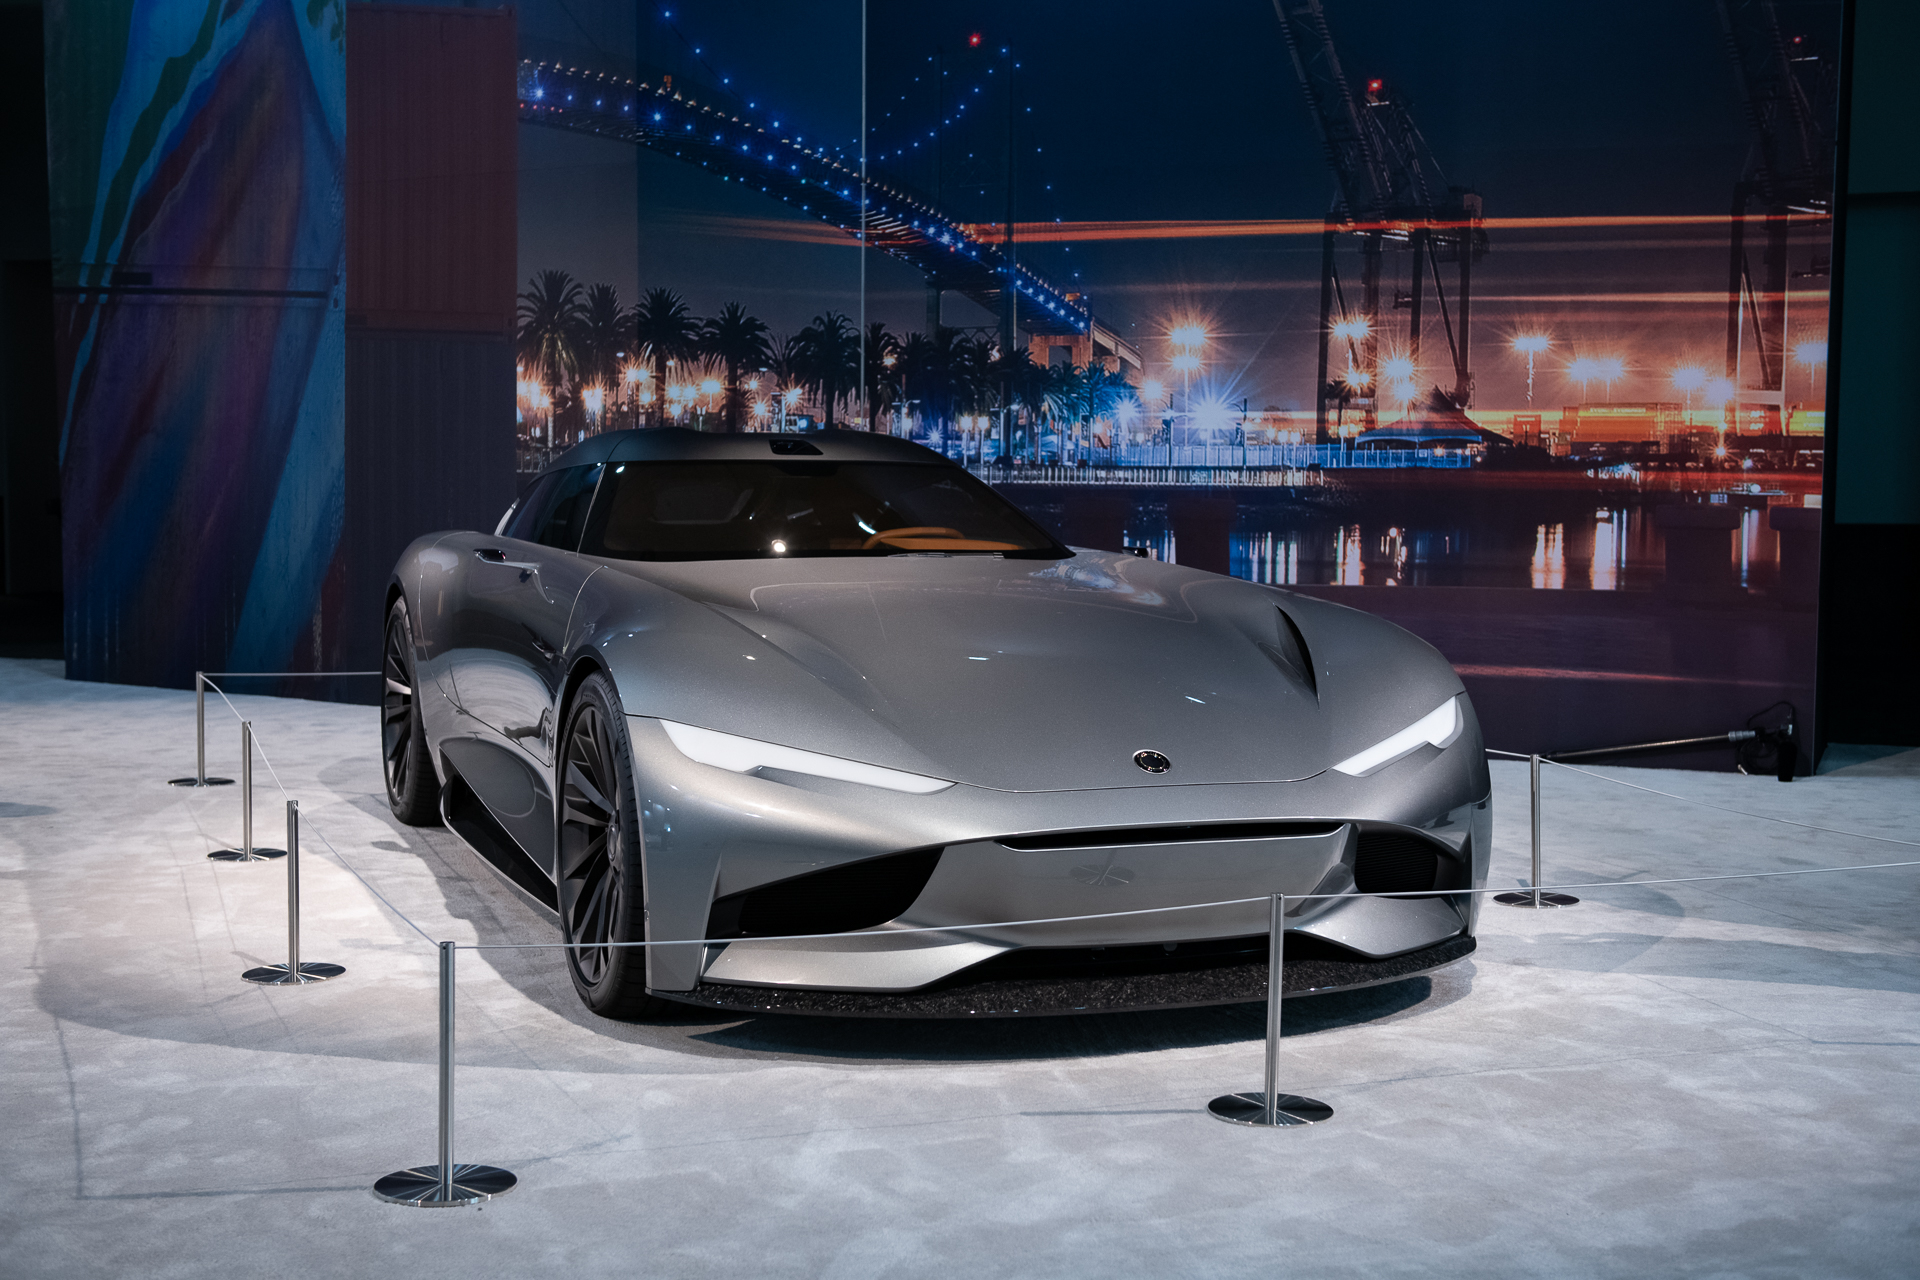 Karma Sc2 Electric Coupe Concept Has 1 100 Horsepower 350 Mile Range